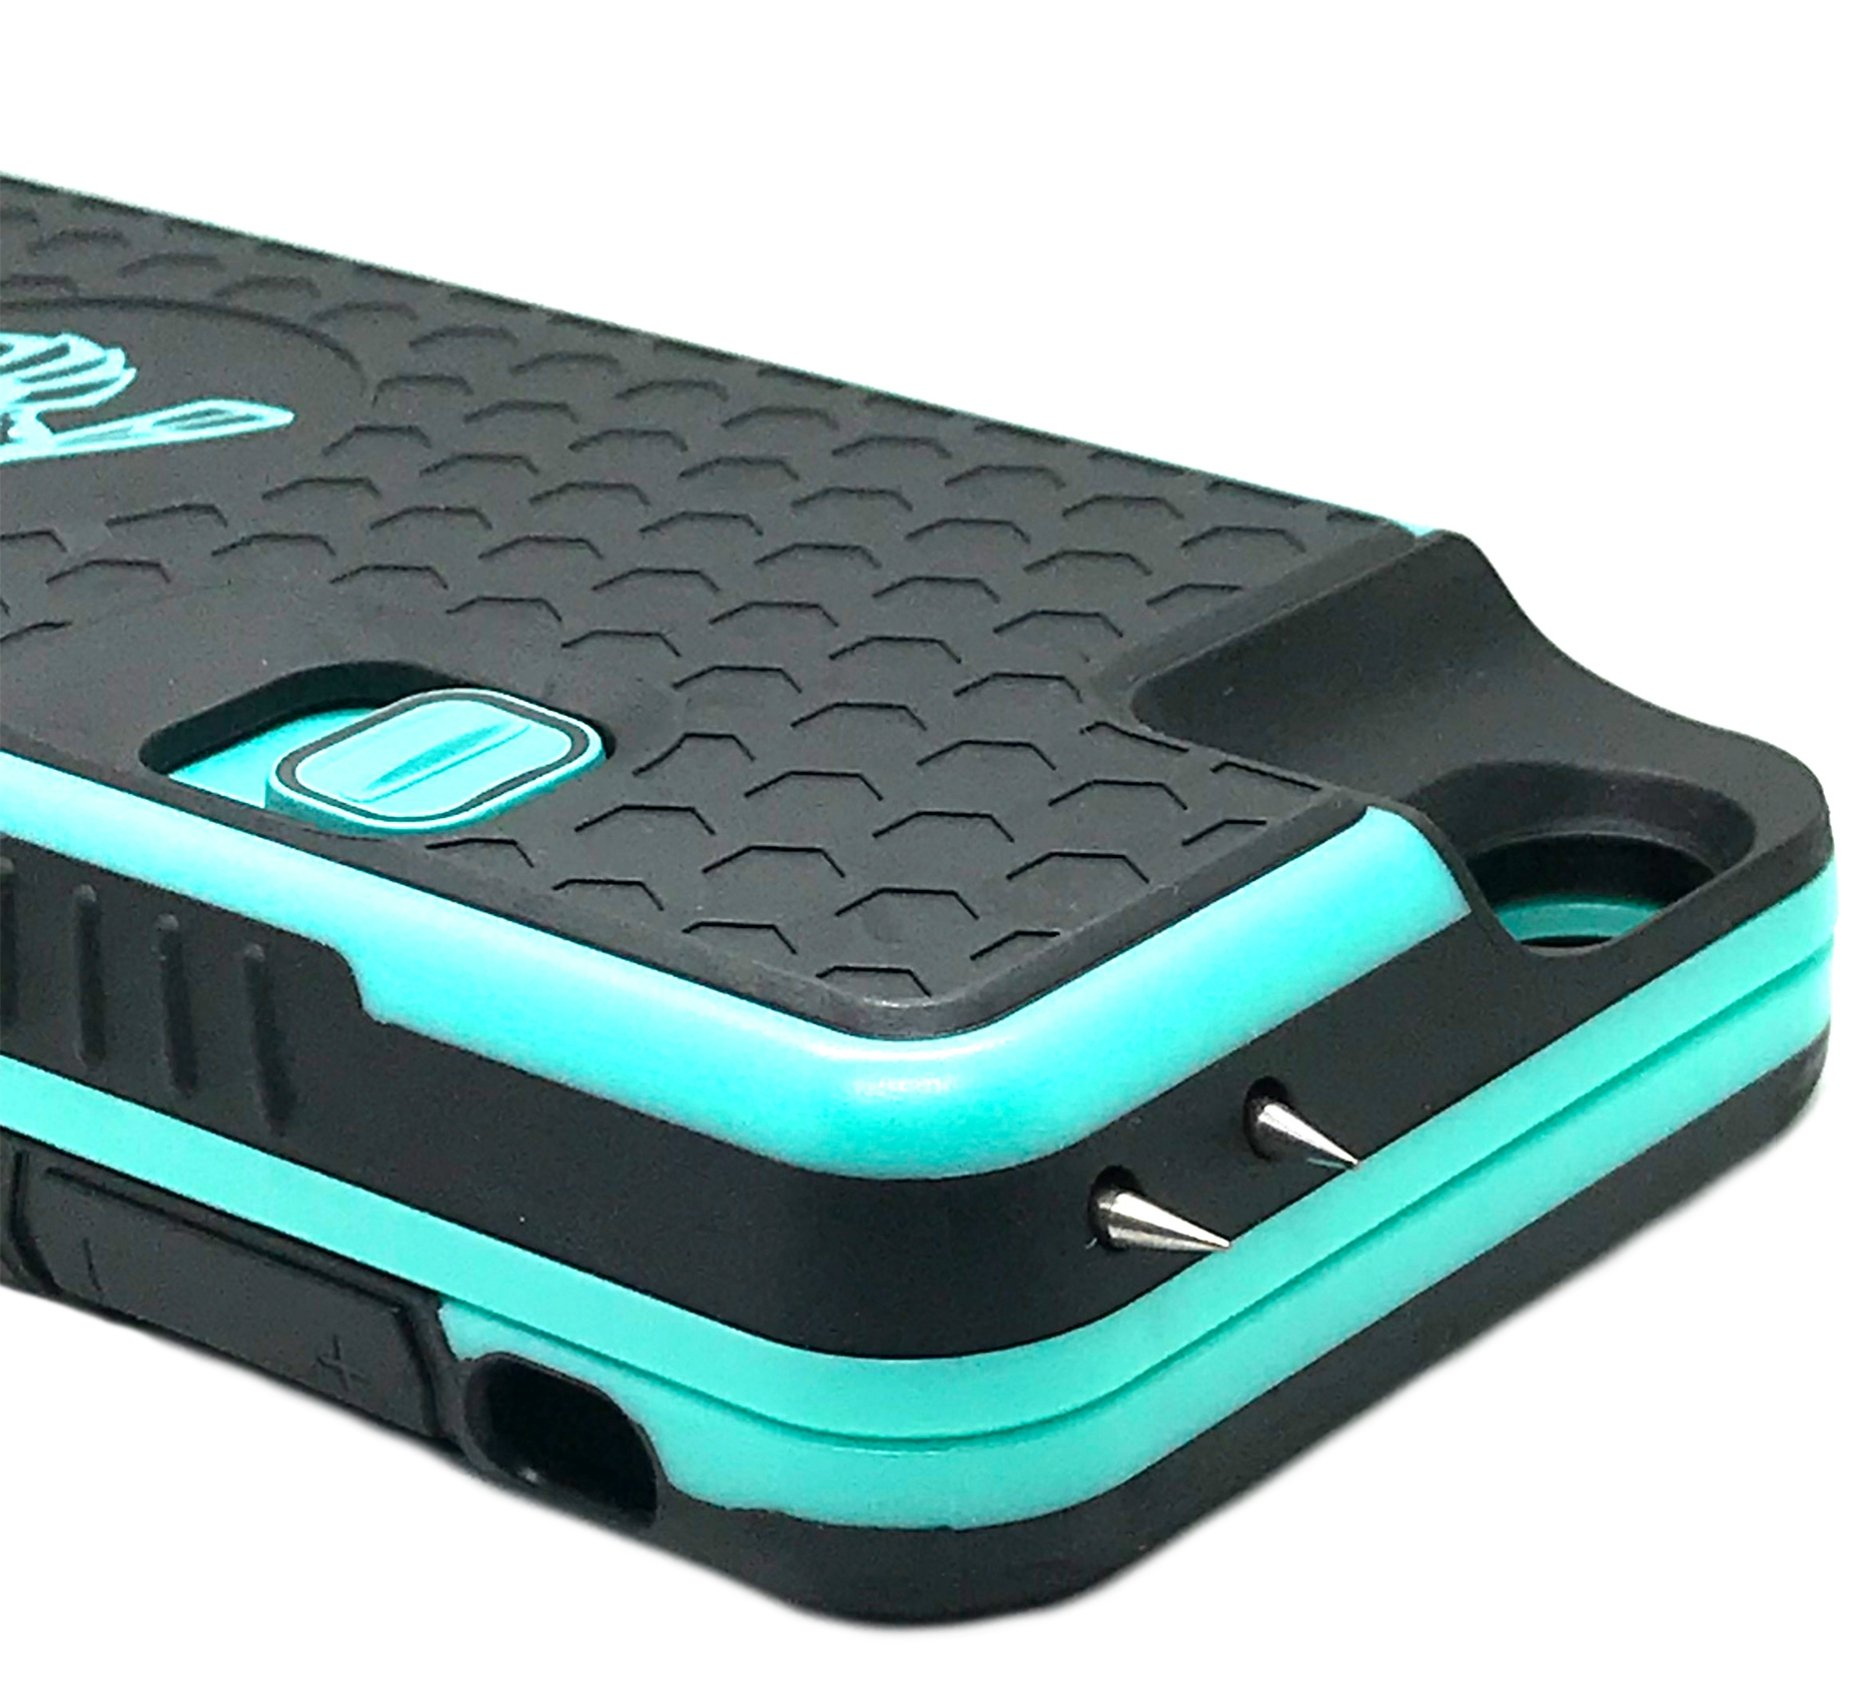 The Only High-Powered Stun Gun that Protects, Recharges Your iPhone 6,6s - Concealed Inside a Durable Weatherproof Case - Flexibility to Attach or Detach - 4.0mAh for Maximum Self Defense - Teal by Yellow Jacket